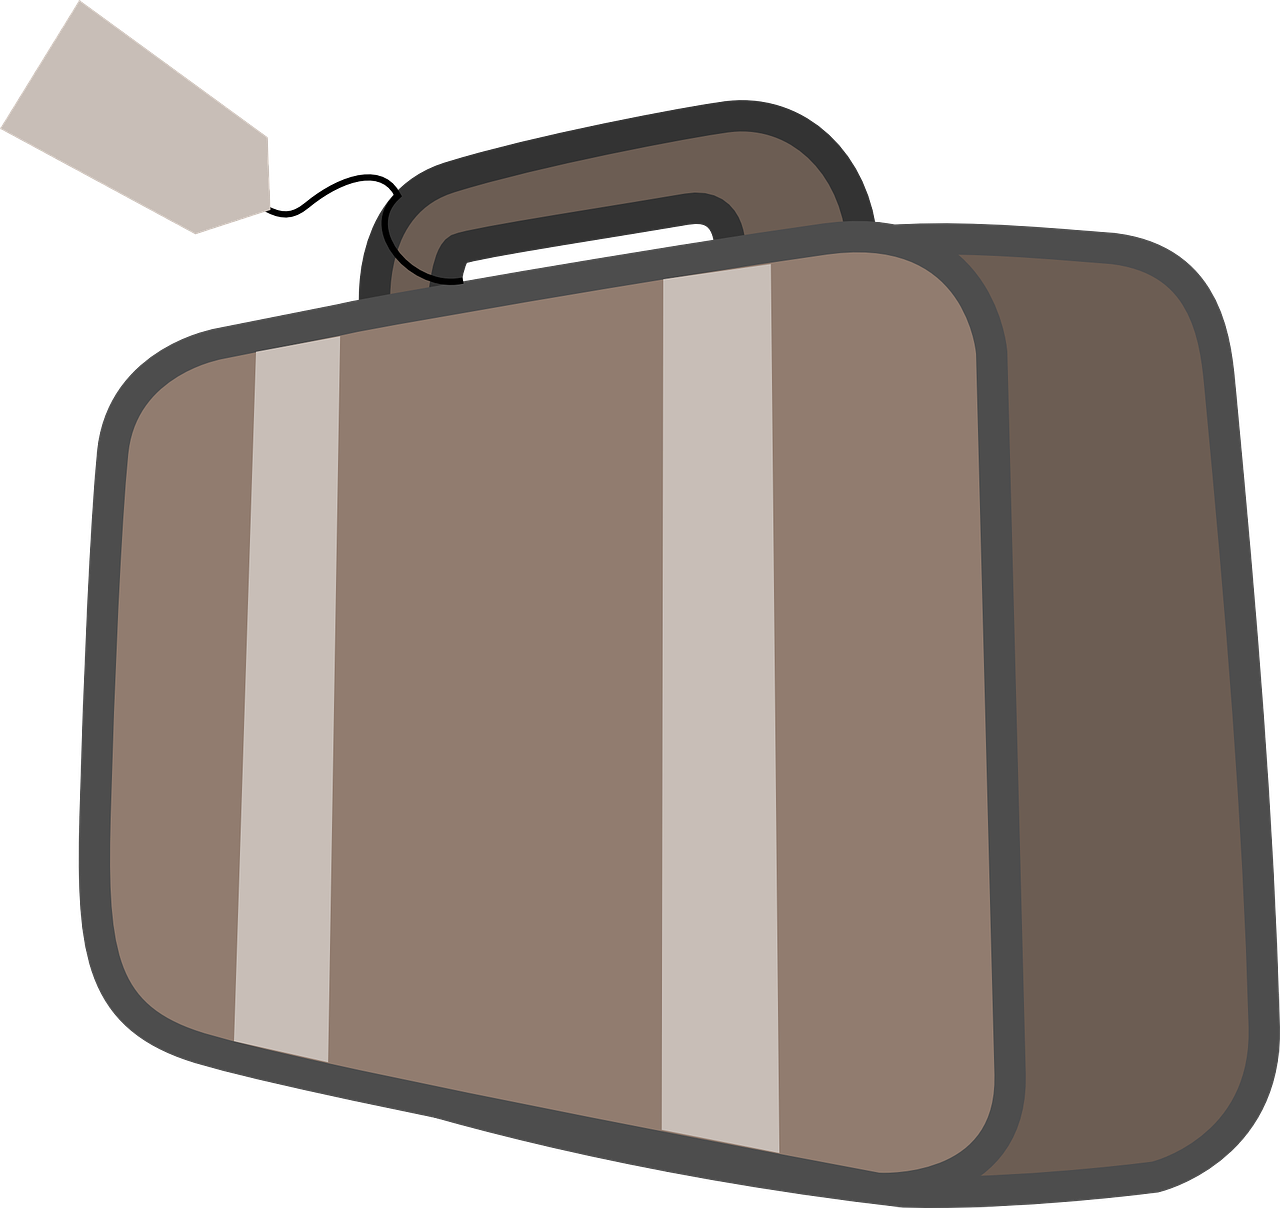 Suitcase,bag with tag